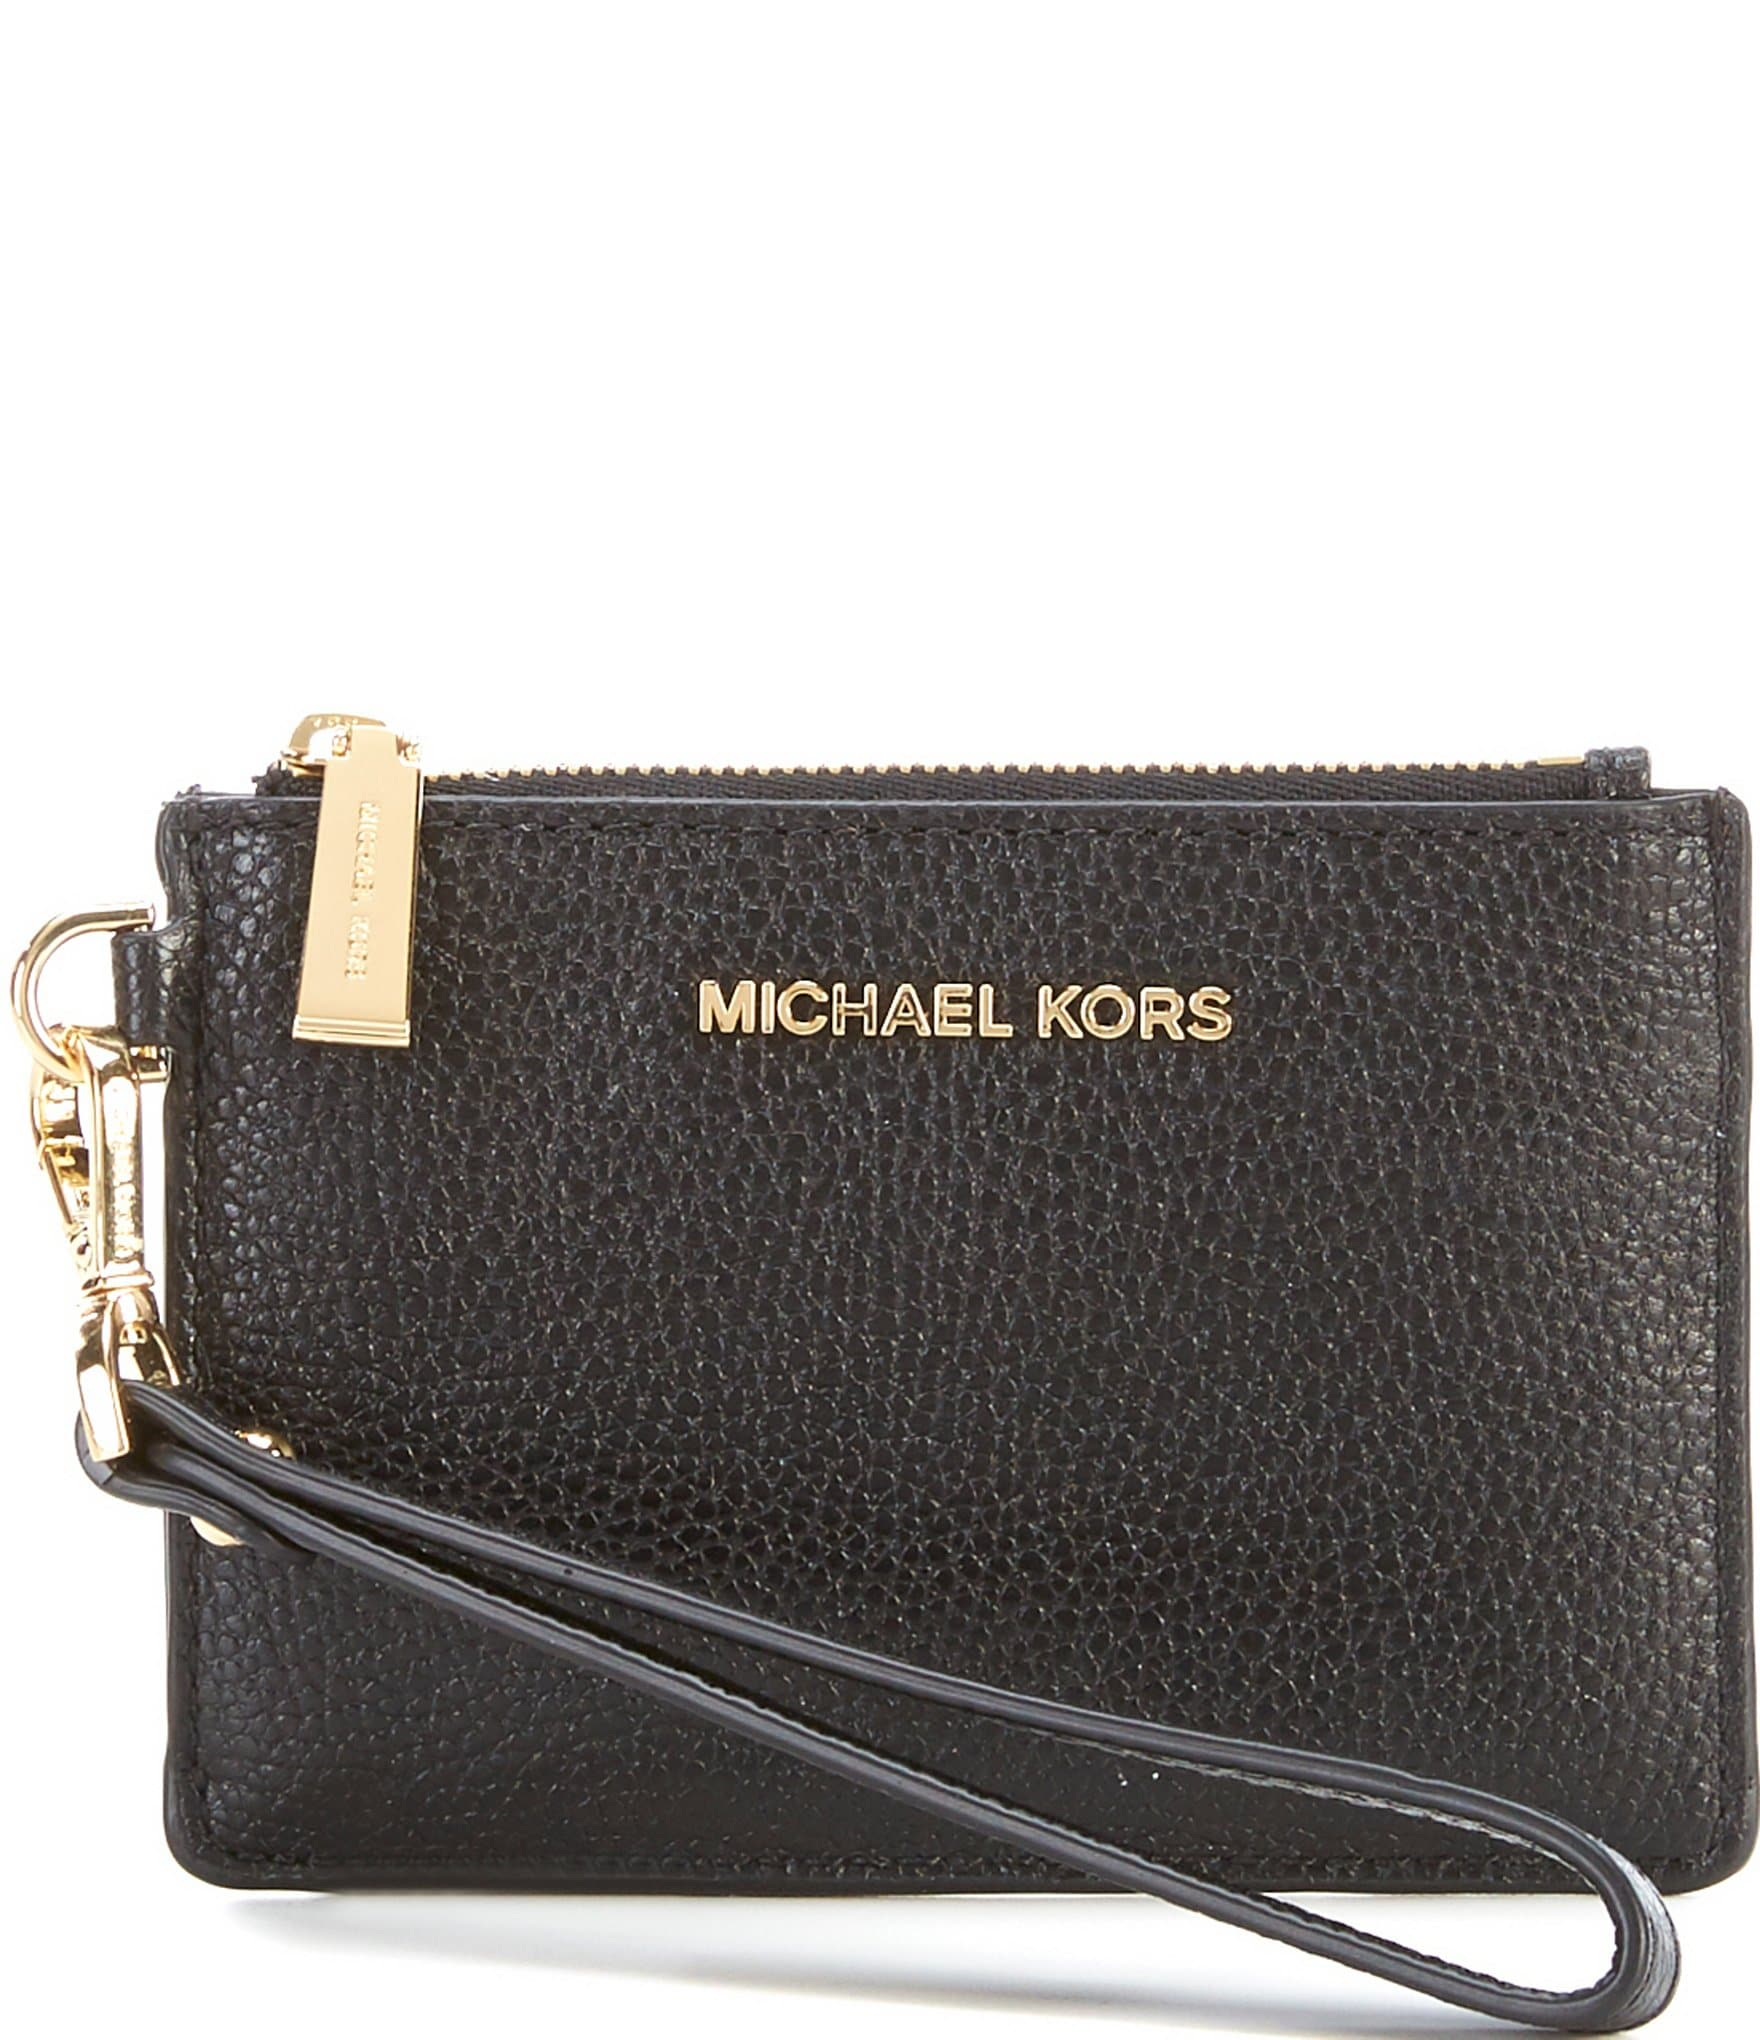 69817e7f2960 michael kors wallet small zip around sale   OFF61% Discounted